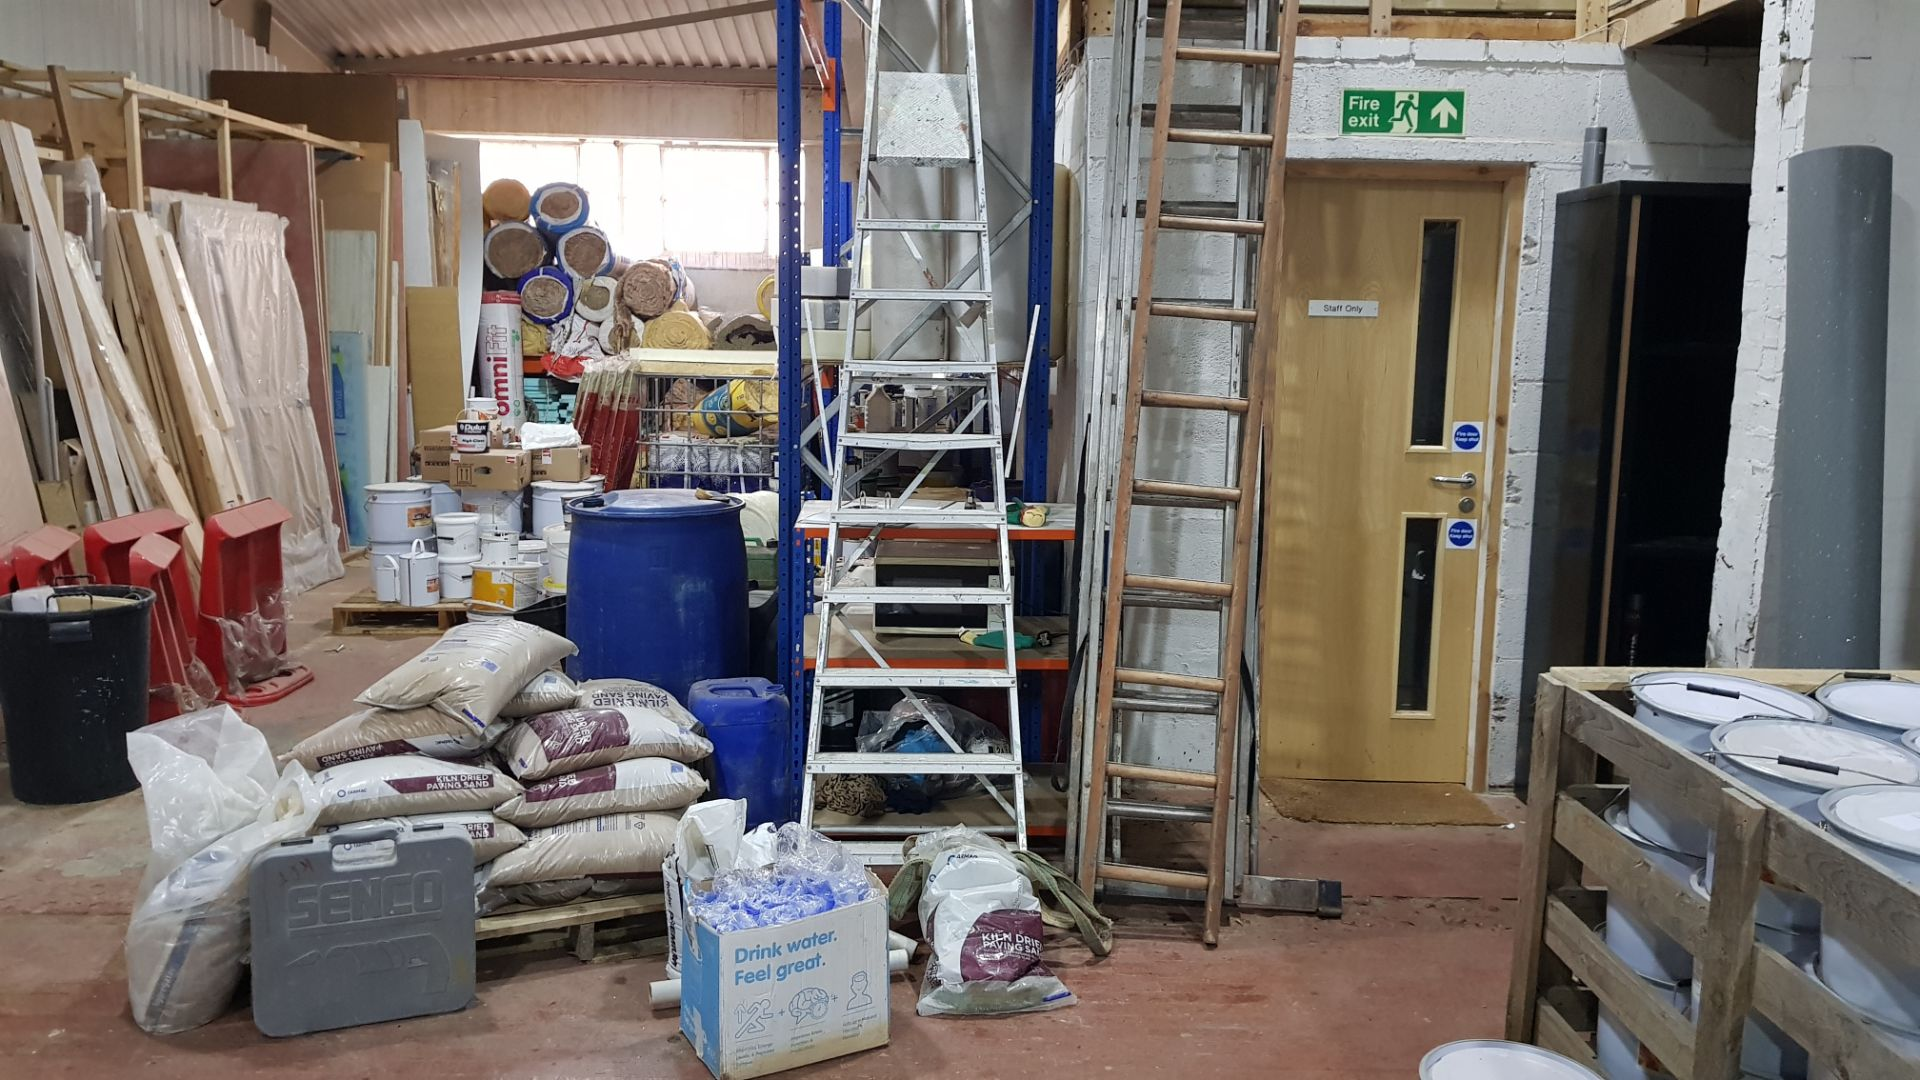 1 X PALLET OF 5KG BAGS OF KILN DRIED PAVING SAND & 4 X VARIOUS LADDERS